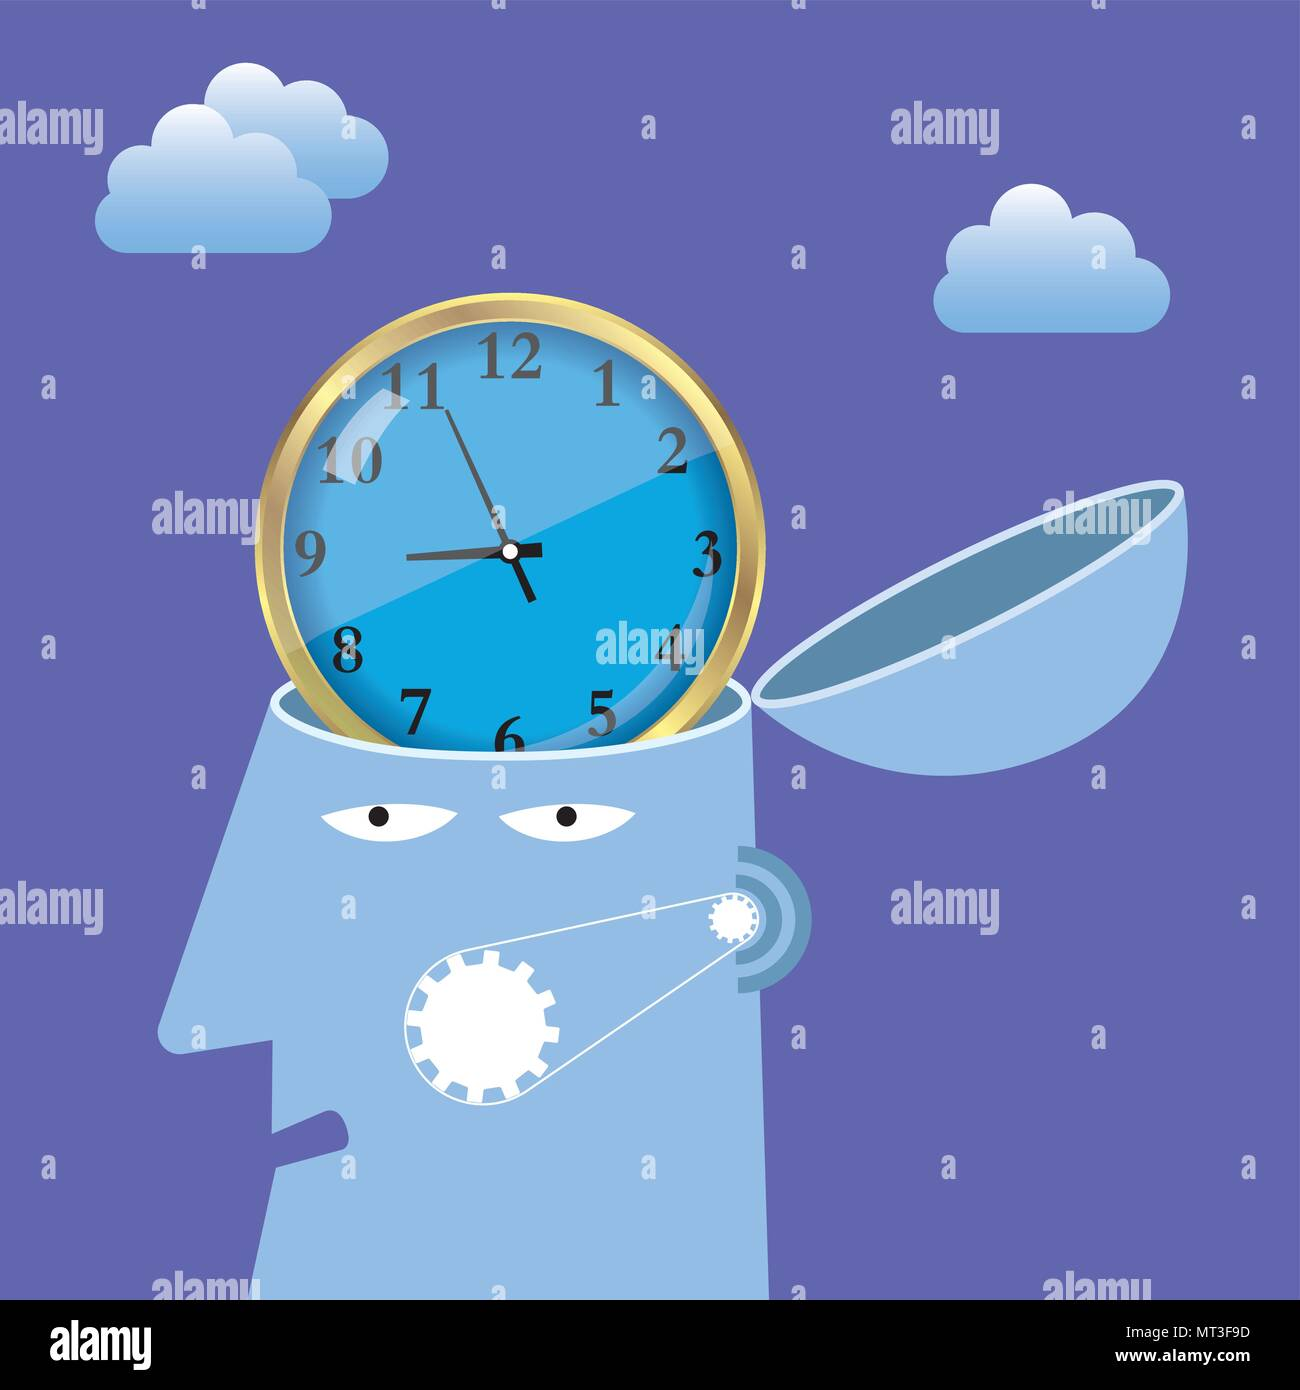 Artificial intelligence concept design, clock in the brain.background is purple. - Stock Vector